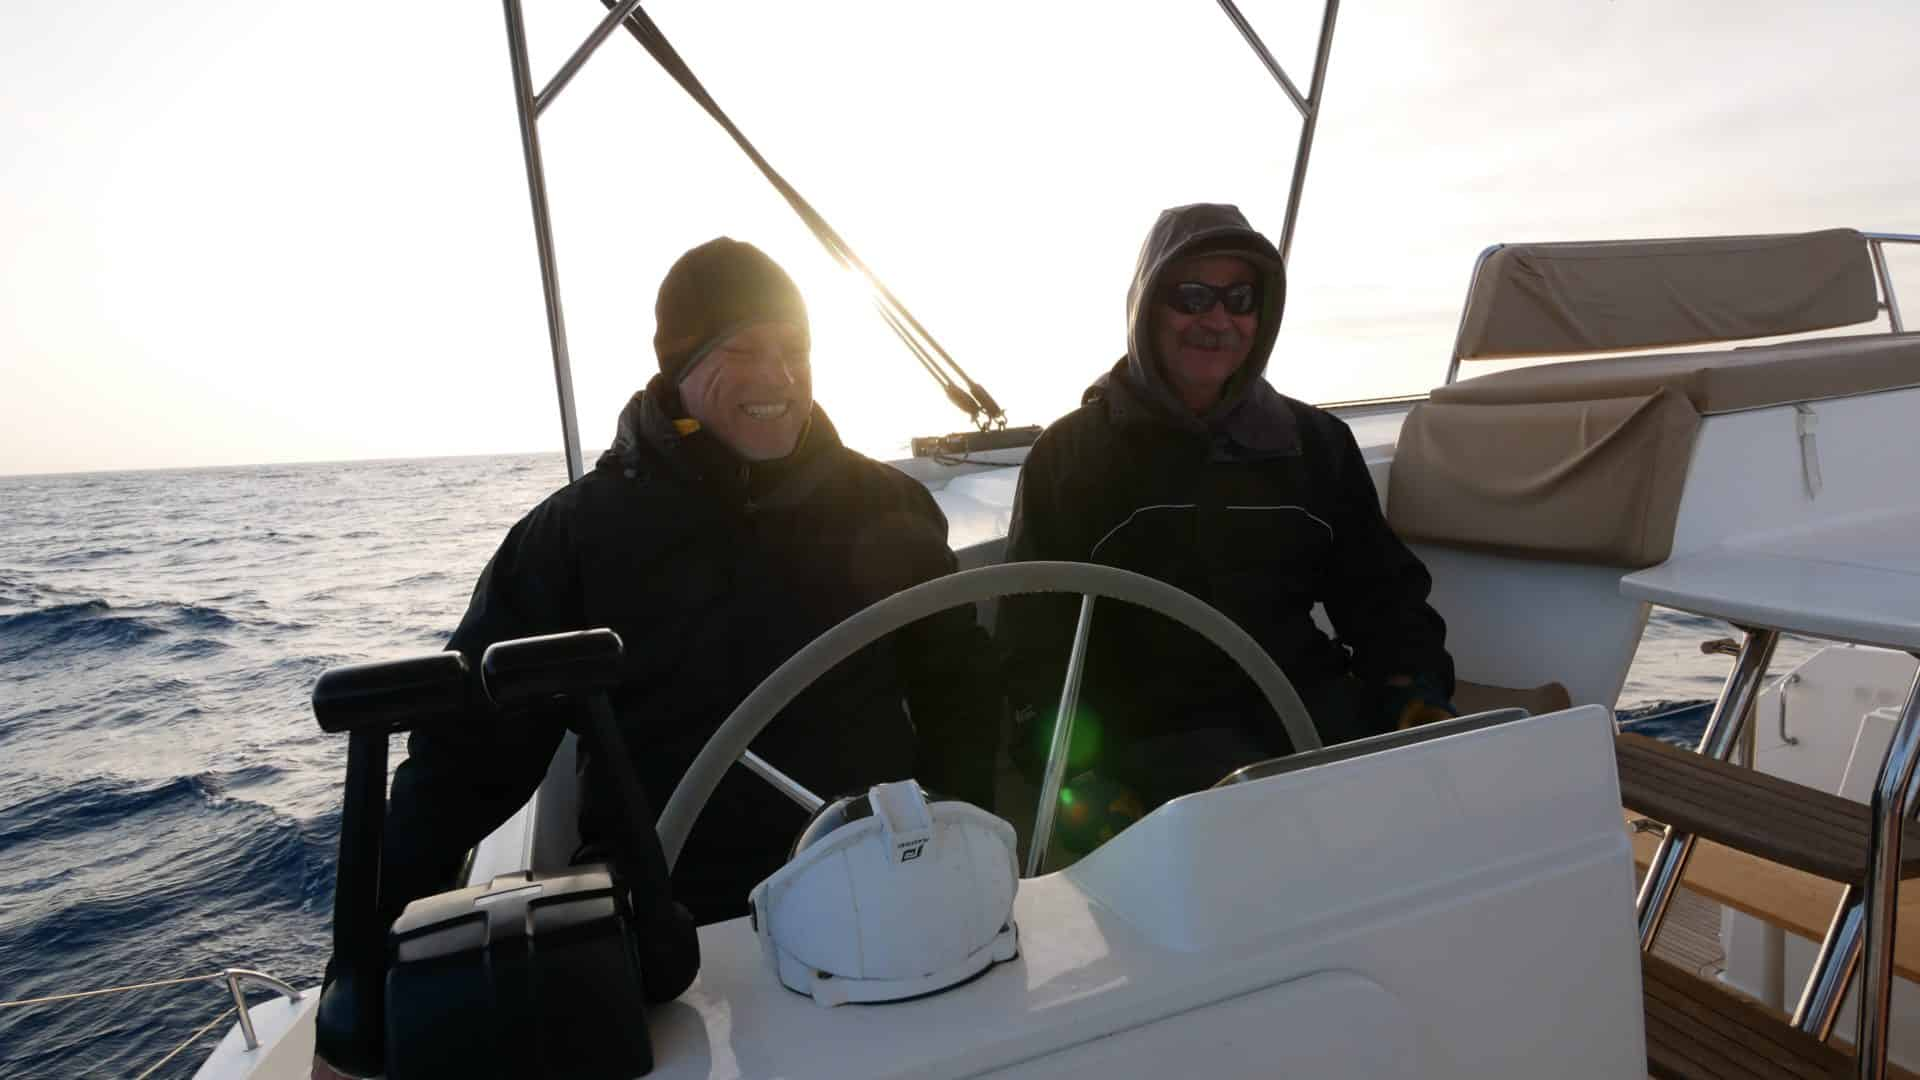 Captain Chas and Tim at the helm of a Fountaine Pajot Helia 44